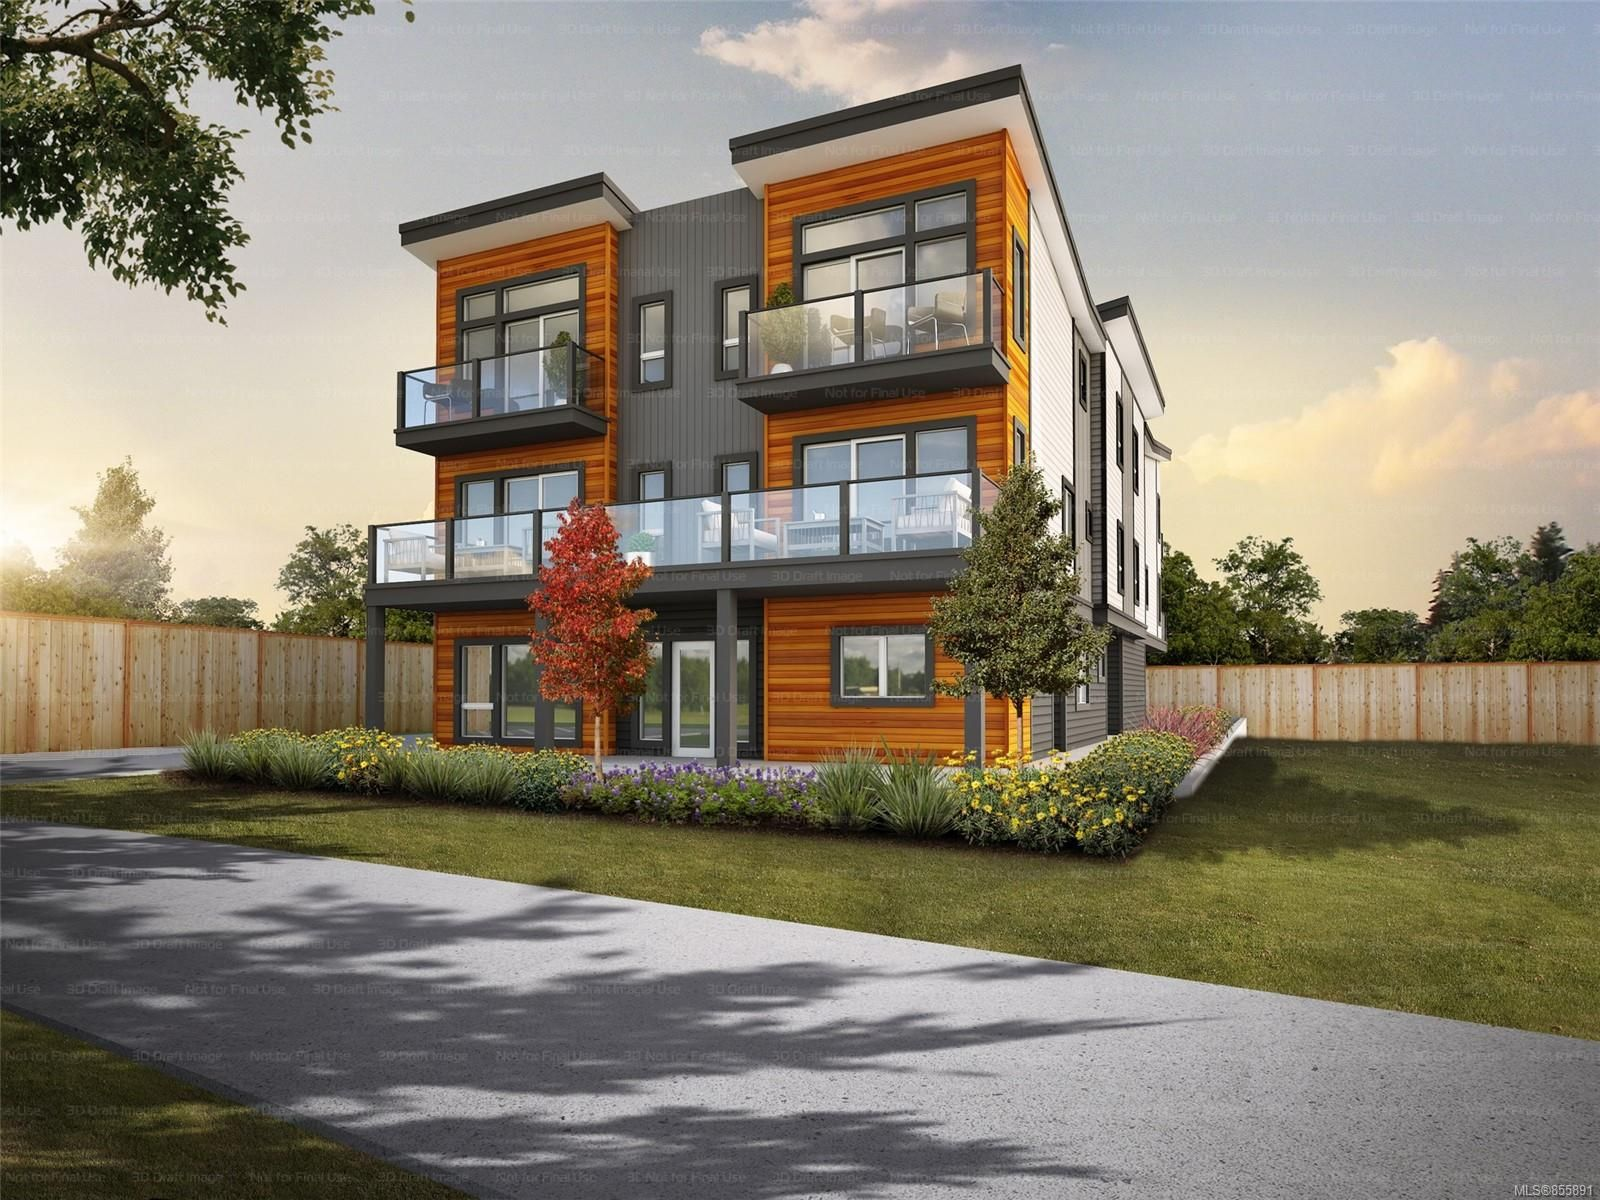 Main Photo: 104 684 Hoylake Ave in : La Thetis Heights Row/Townhouse for sale (Langford)  : MLS®# 855891